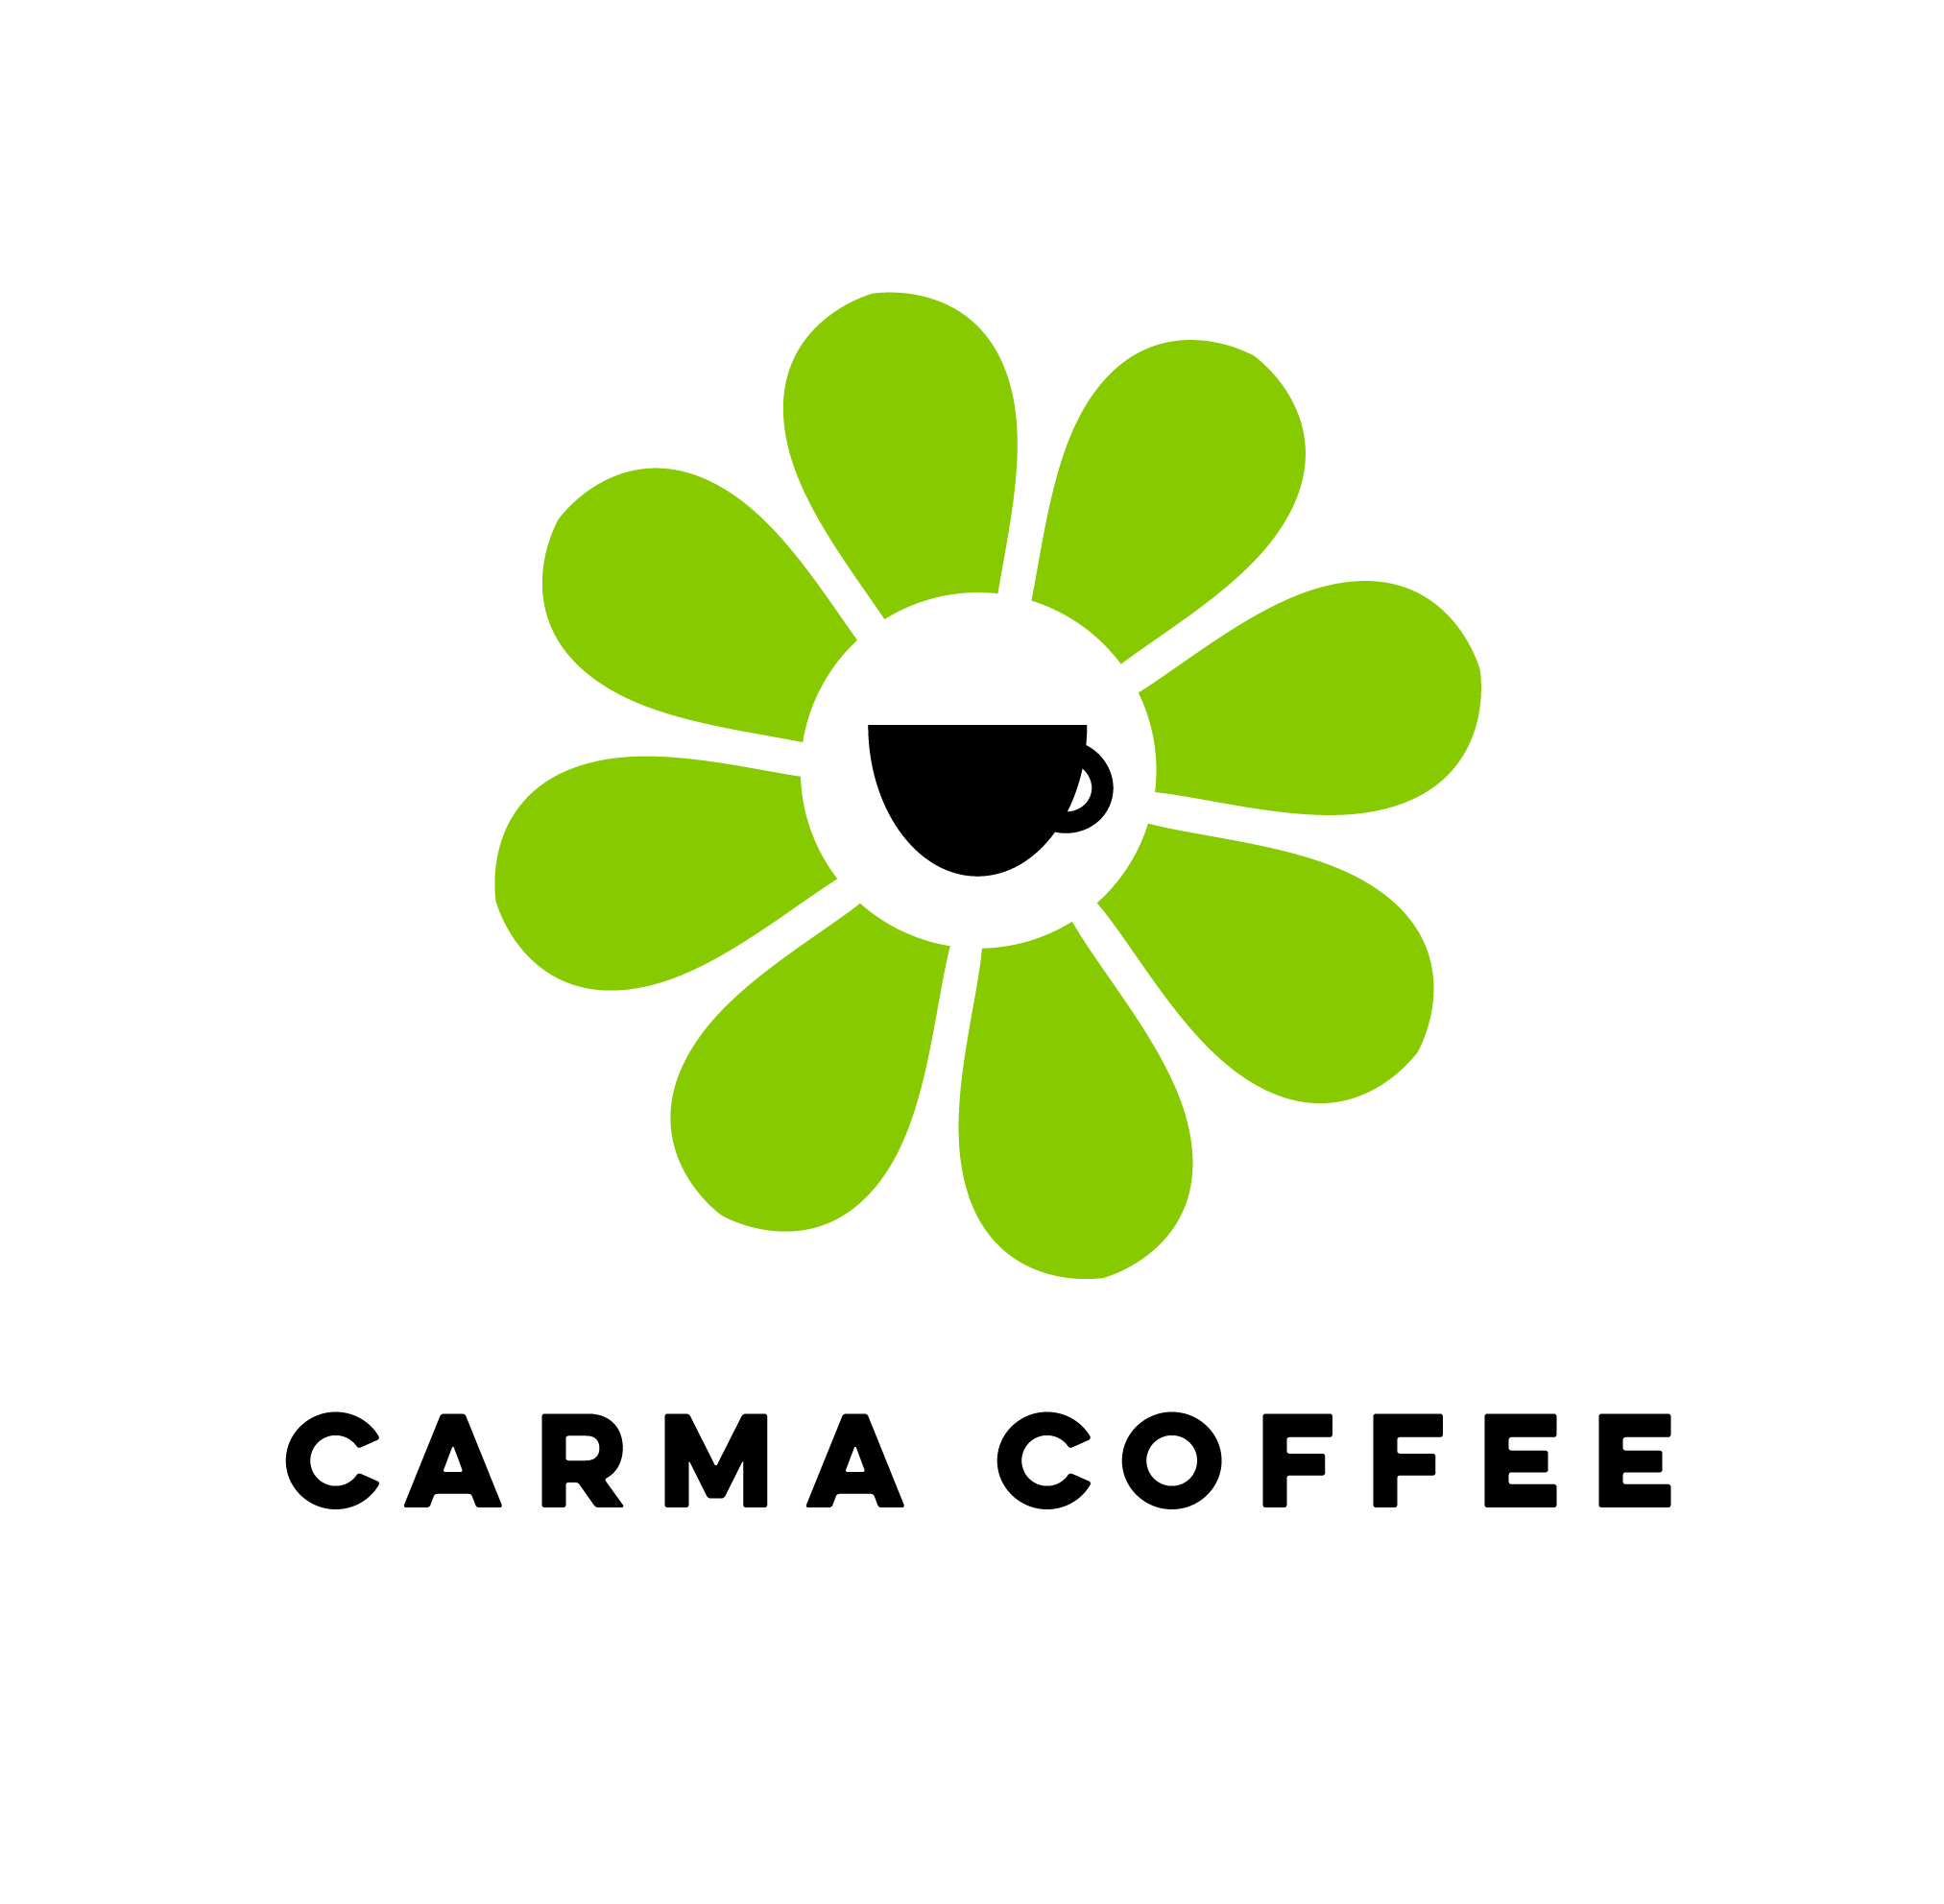 Carma Coffee Intro Photo